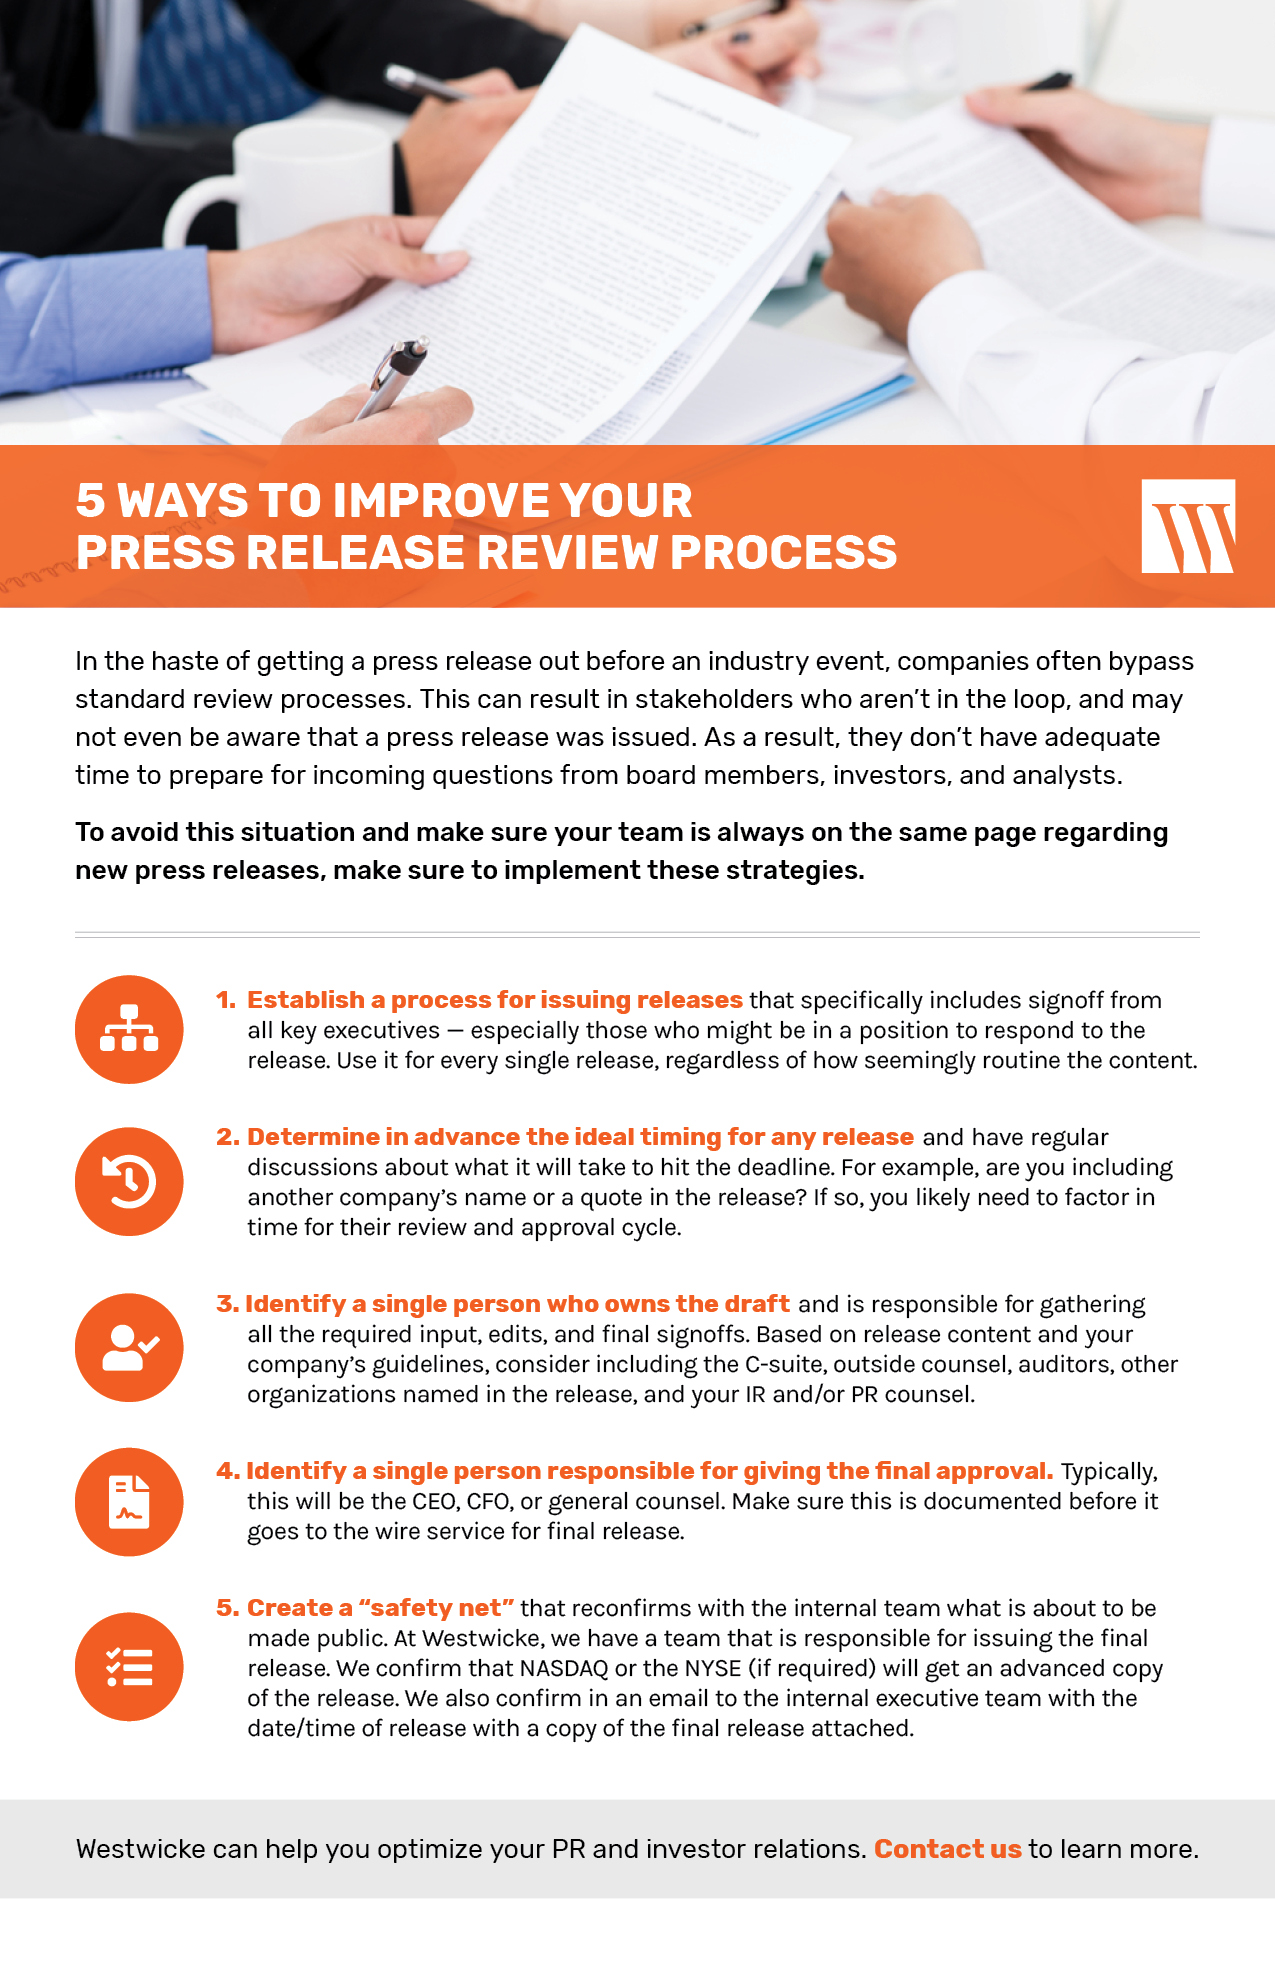 Westwicke Checklist: 5 Ways to Improve Your Press Release Review Process